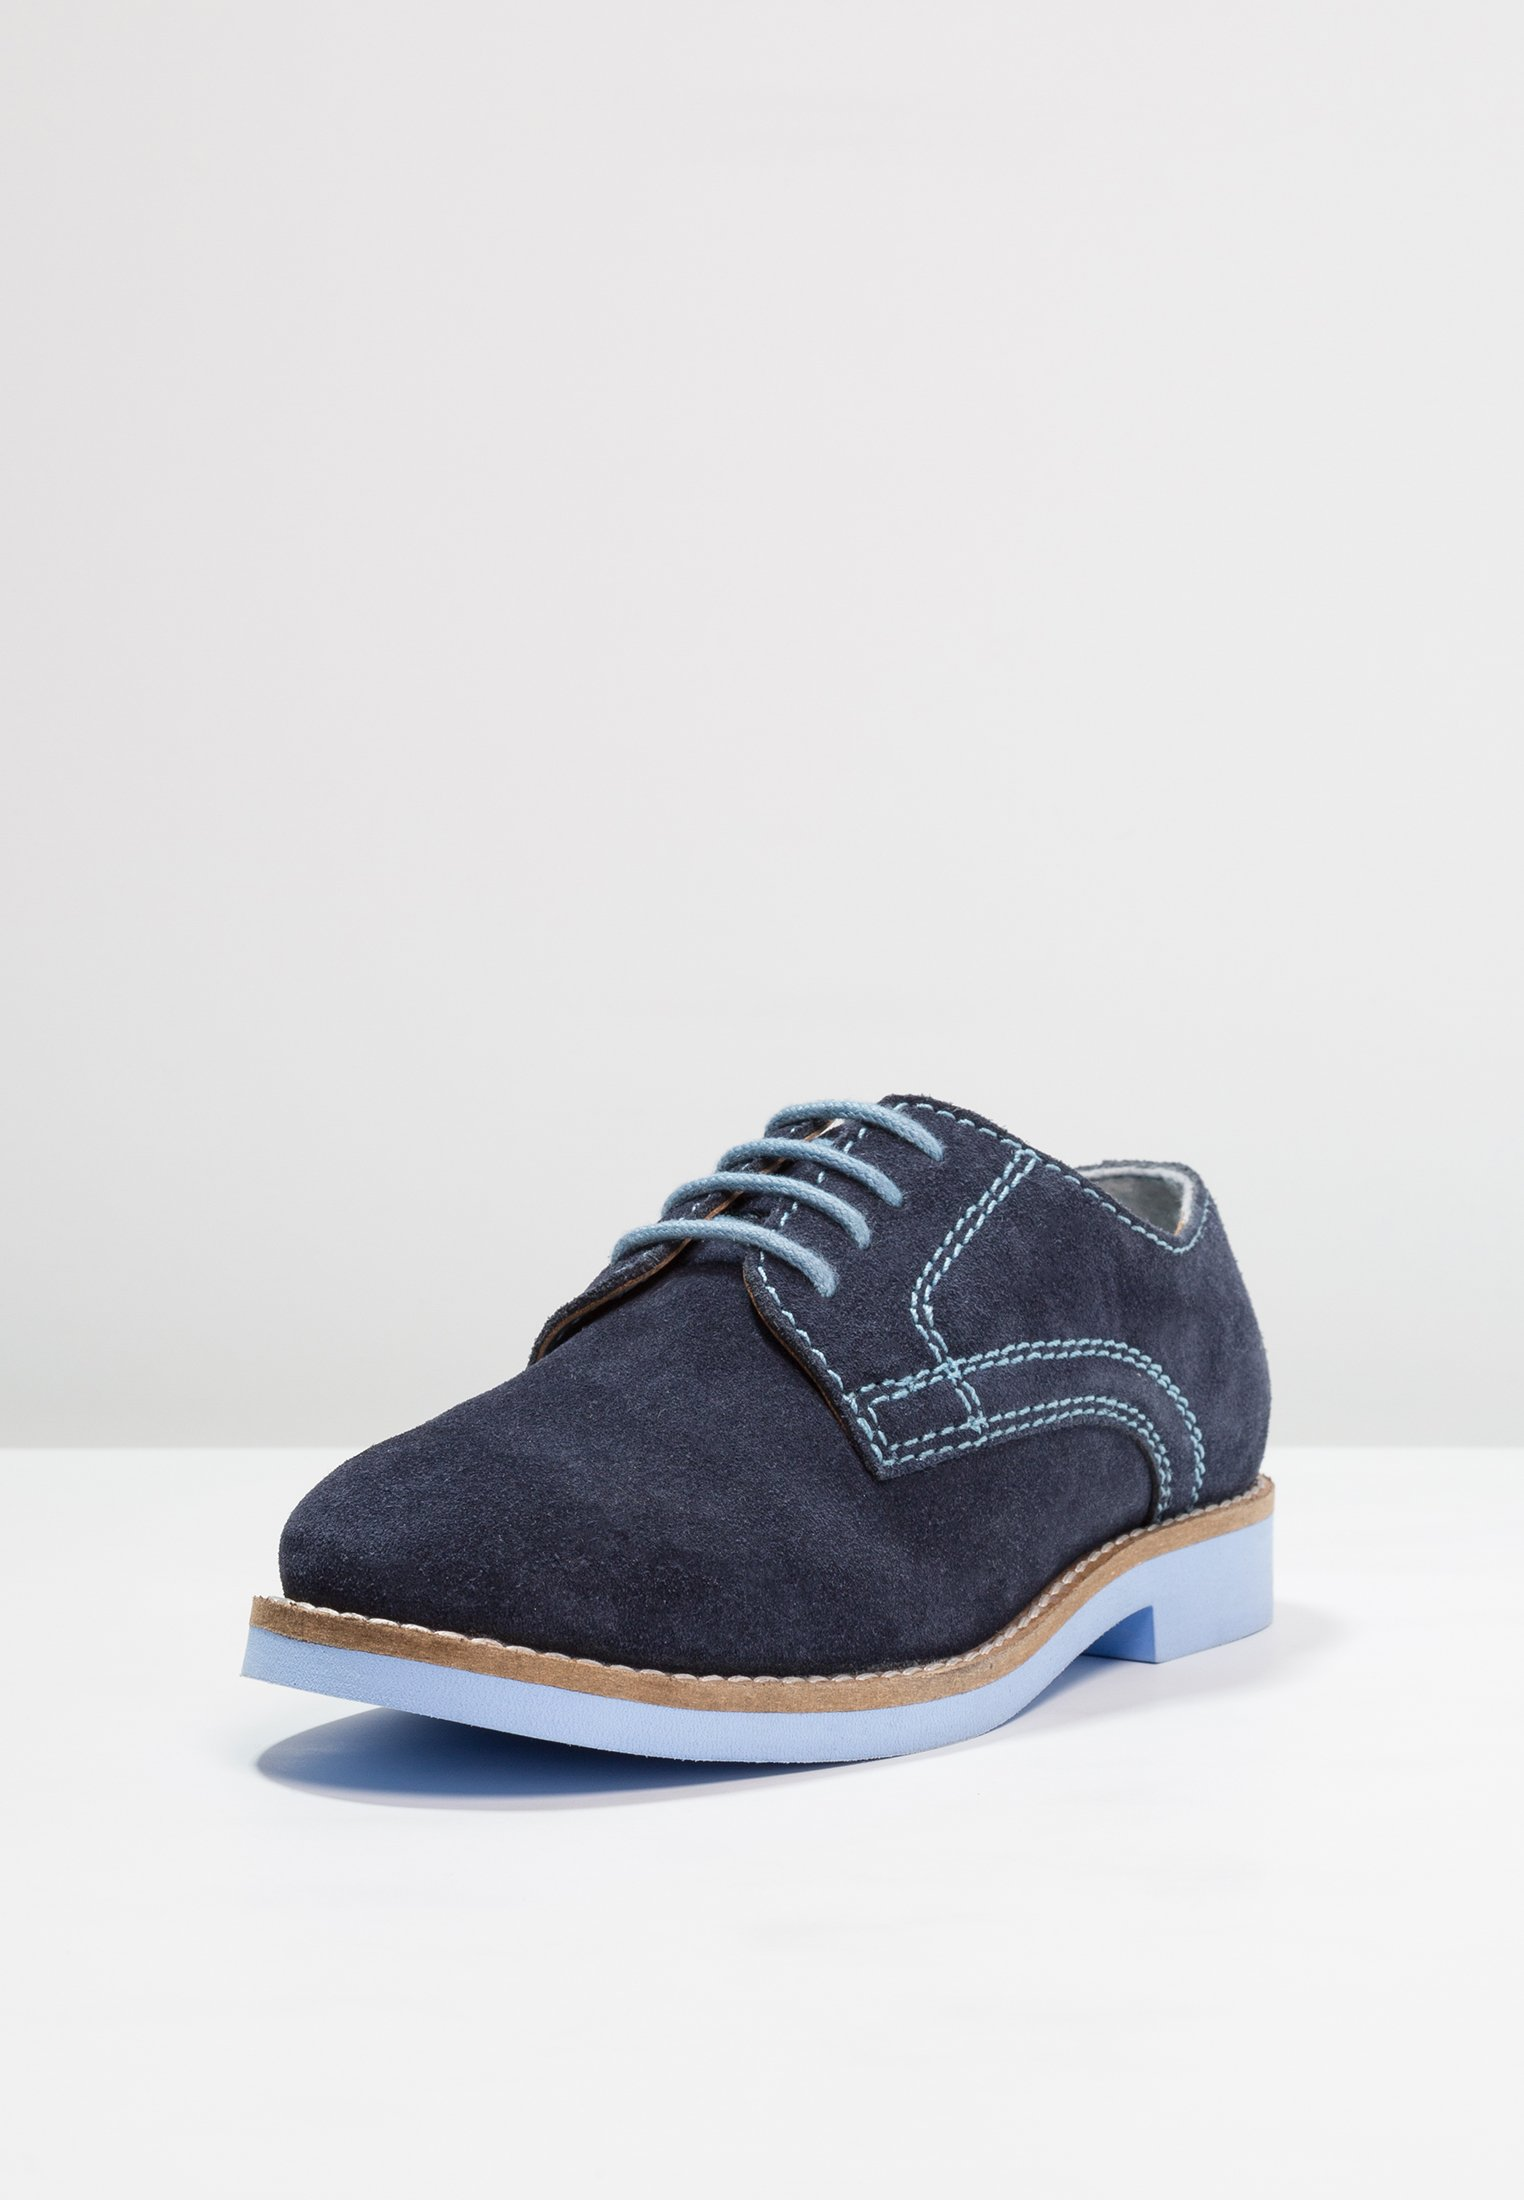 Wholesale Quality Cheapest Friboo Lace-ups - dark blue | kids shoes 2020 nQsYt